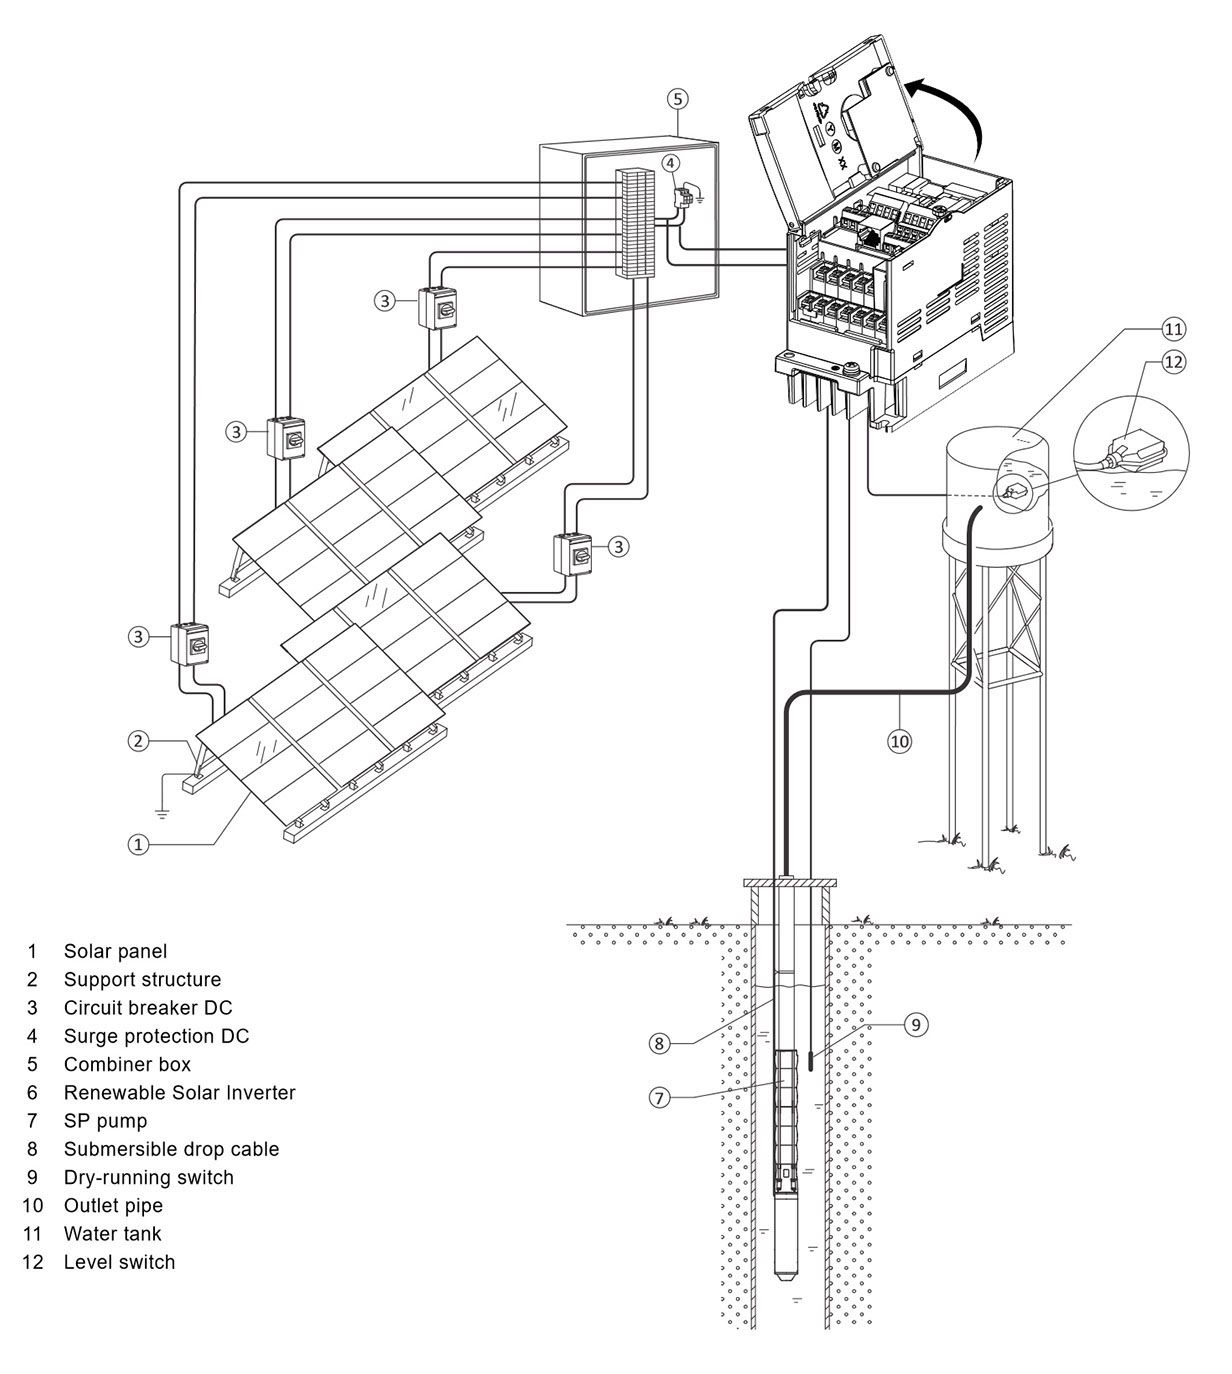 Powerflex 70 Wiring Schematic Diagram And Engine Allen Bradley Vfd Rockwell 700 Moreover Furthermore Ab 755